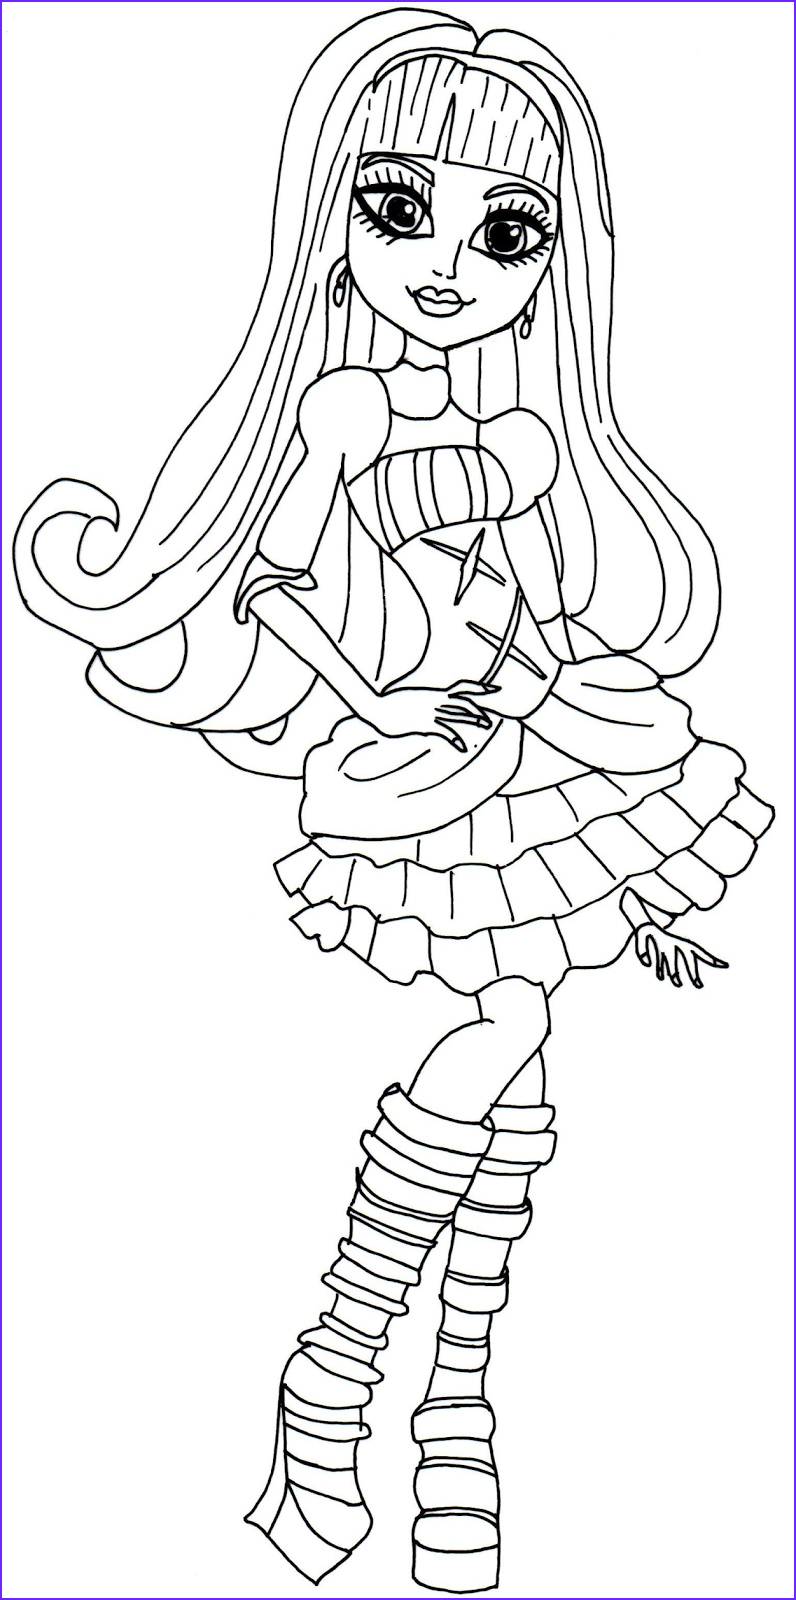 Monster High Coloring Pages Cool Photos Free Printable Monster High Coloring Pages December 2013